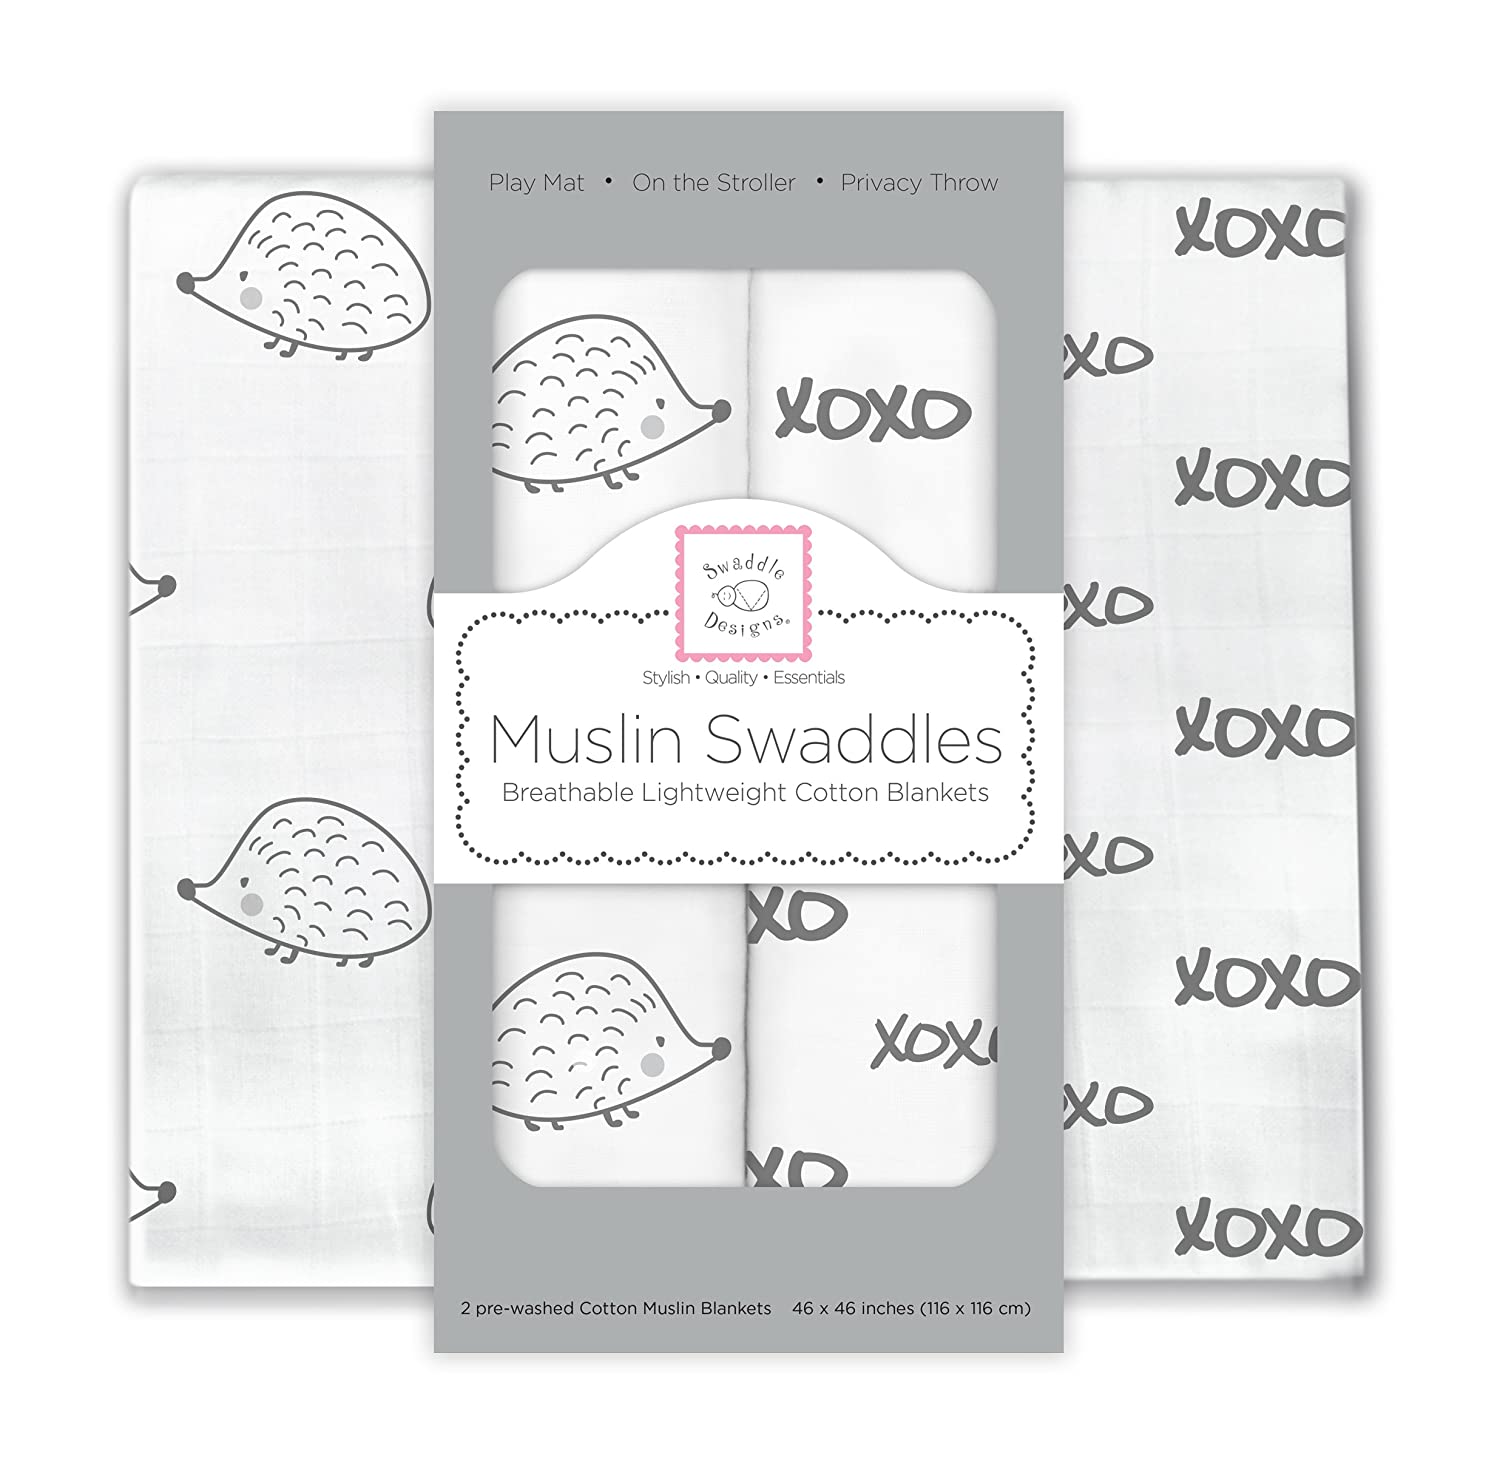 SwaddleDesigns X-Large Cotton Muslin Swaddle Blankets, Hogs and Kisses, Black, Set of 2 SwaddleDesings SDM-163BK